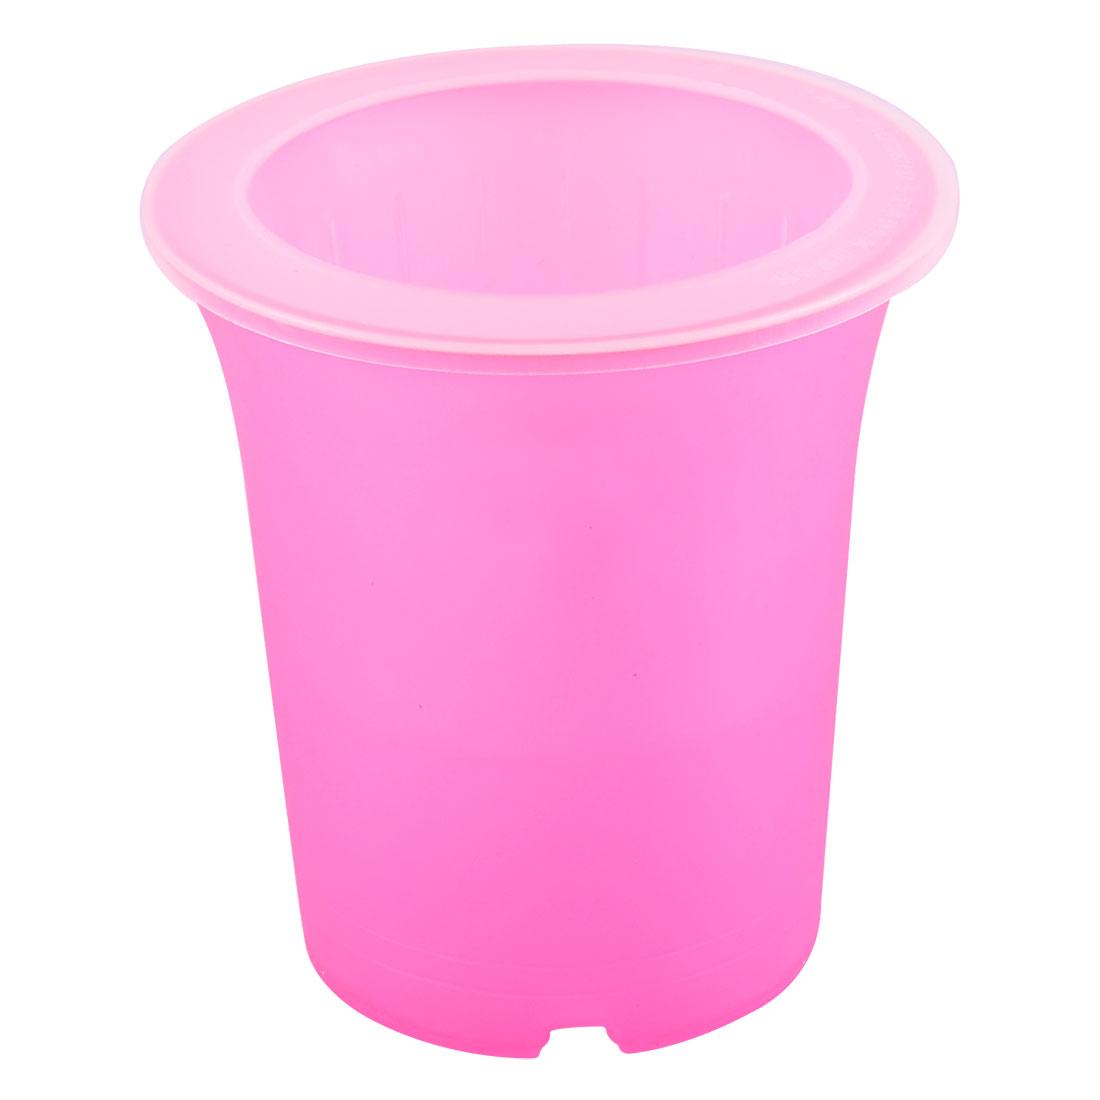 Plastic Round Design Self Watering Planter Garden Pot Container Fuchsia